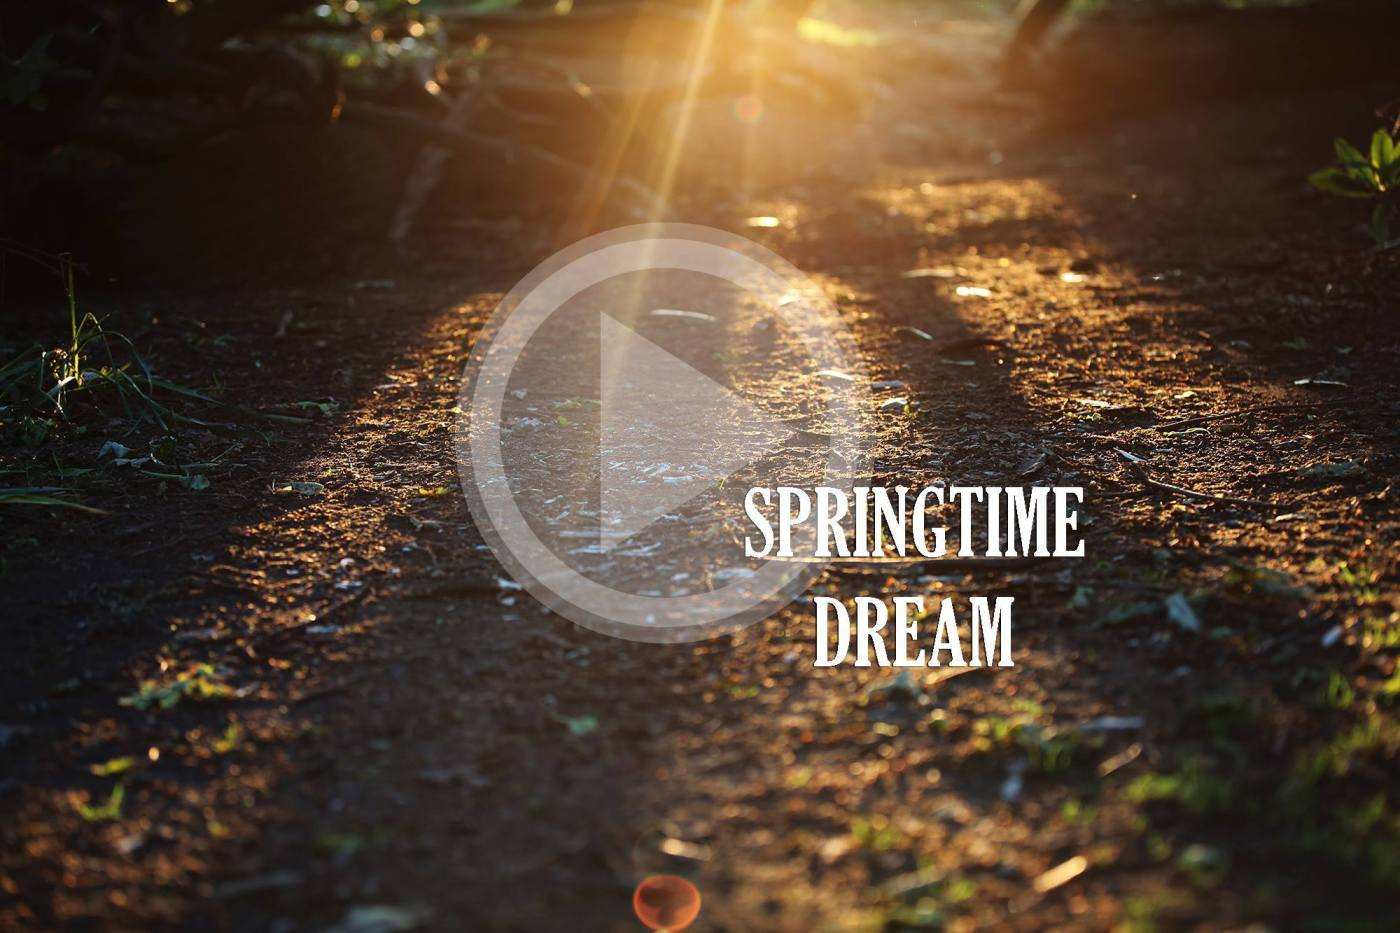 Springtime Dream, music by Noris Schek, video by Cristina Schek